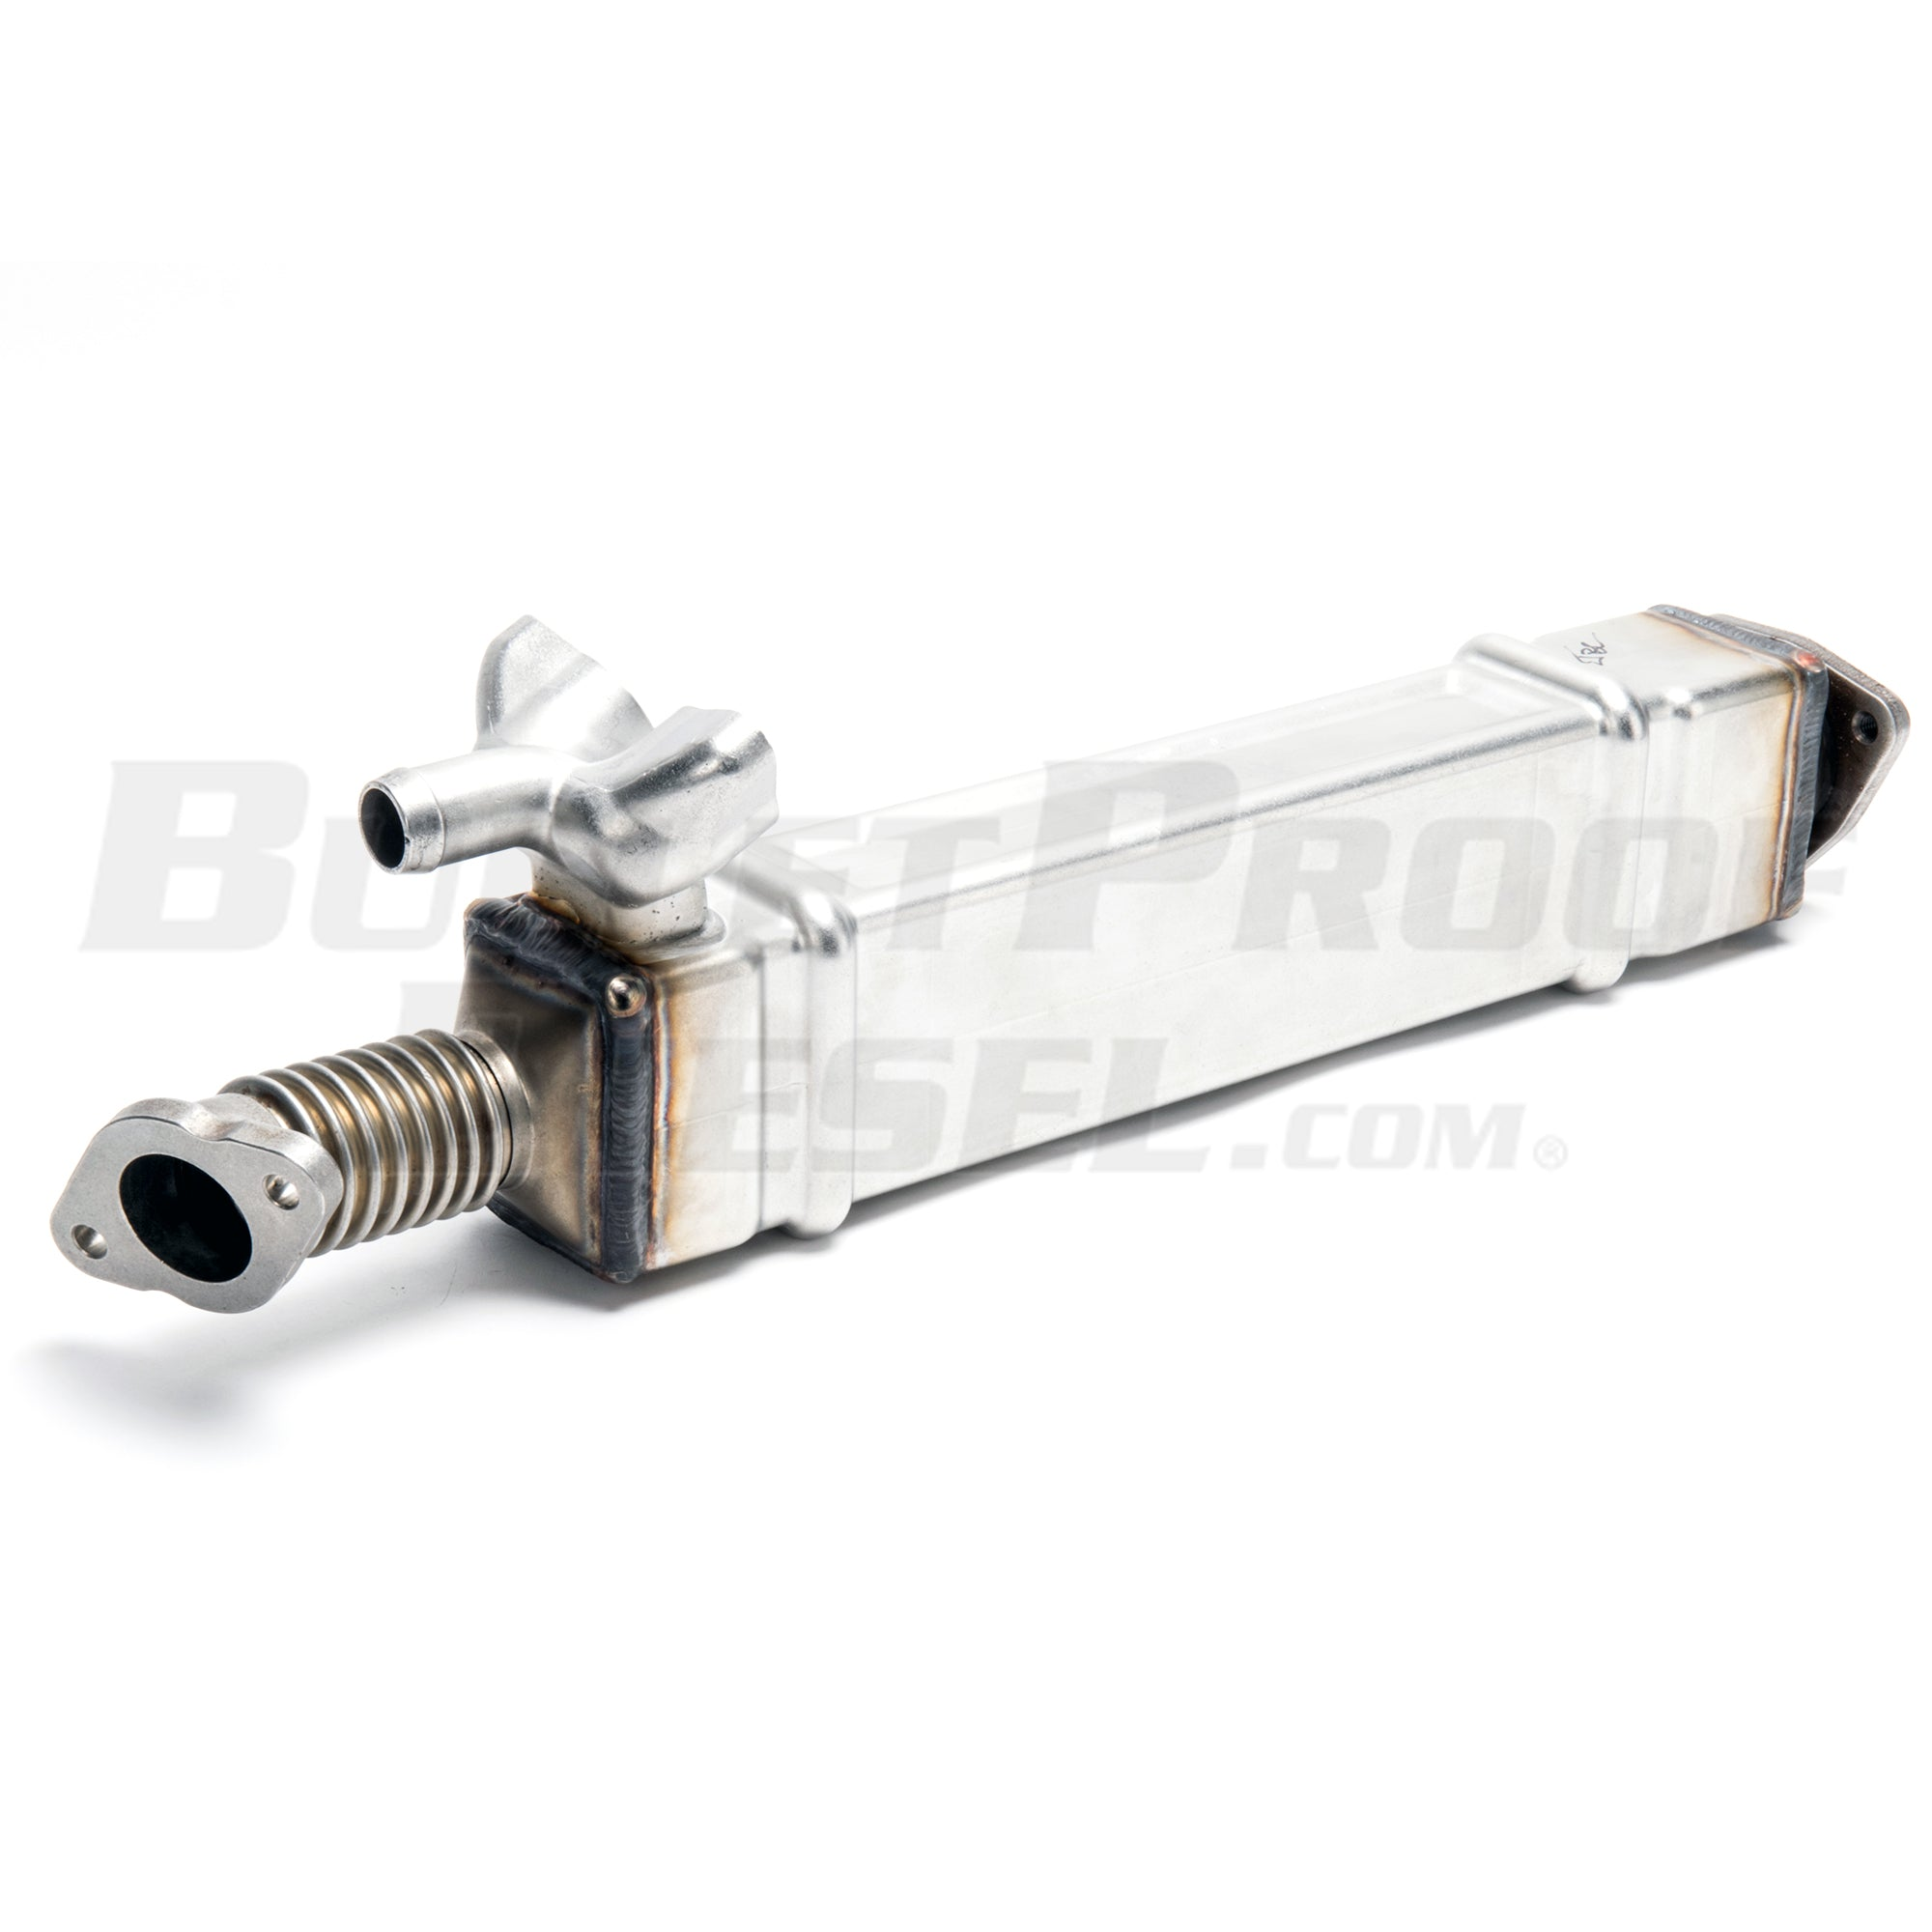 BulletProof EGR Cooler, Upgraded, International MaxxForce 7